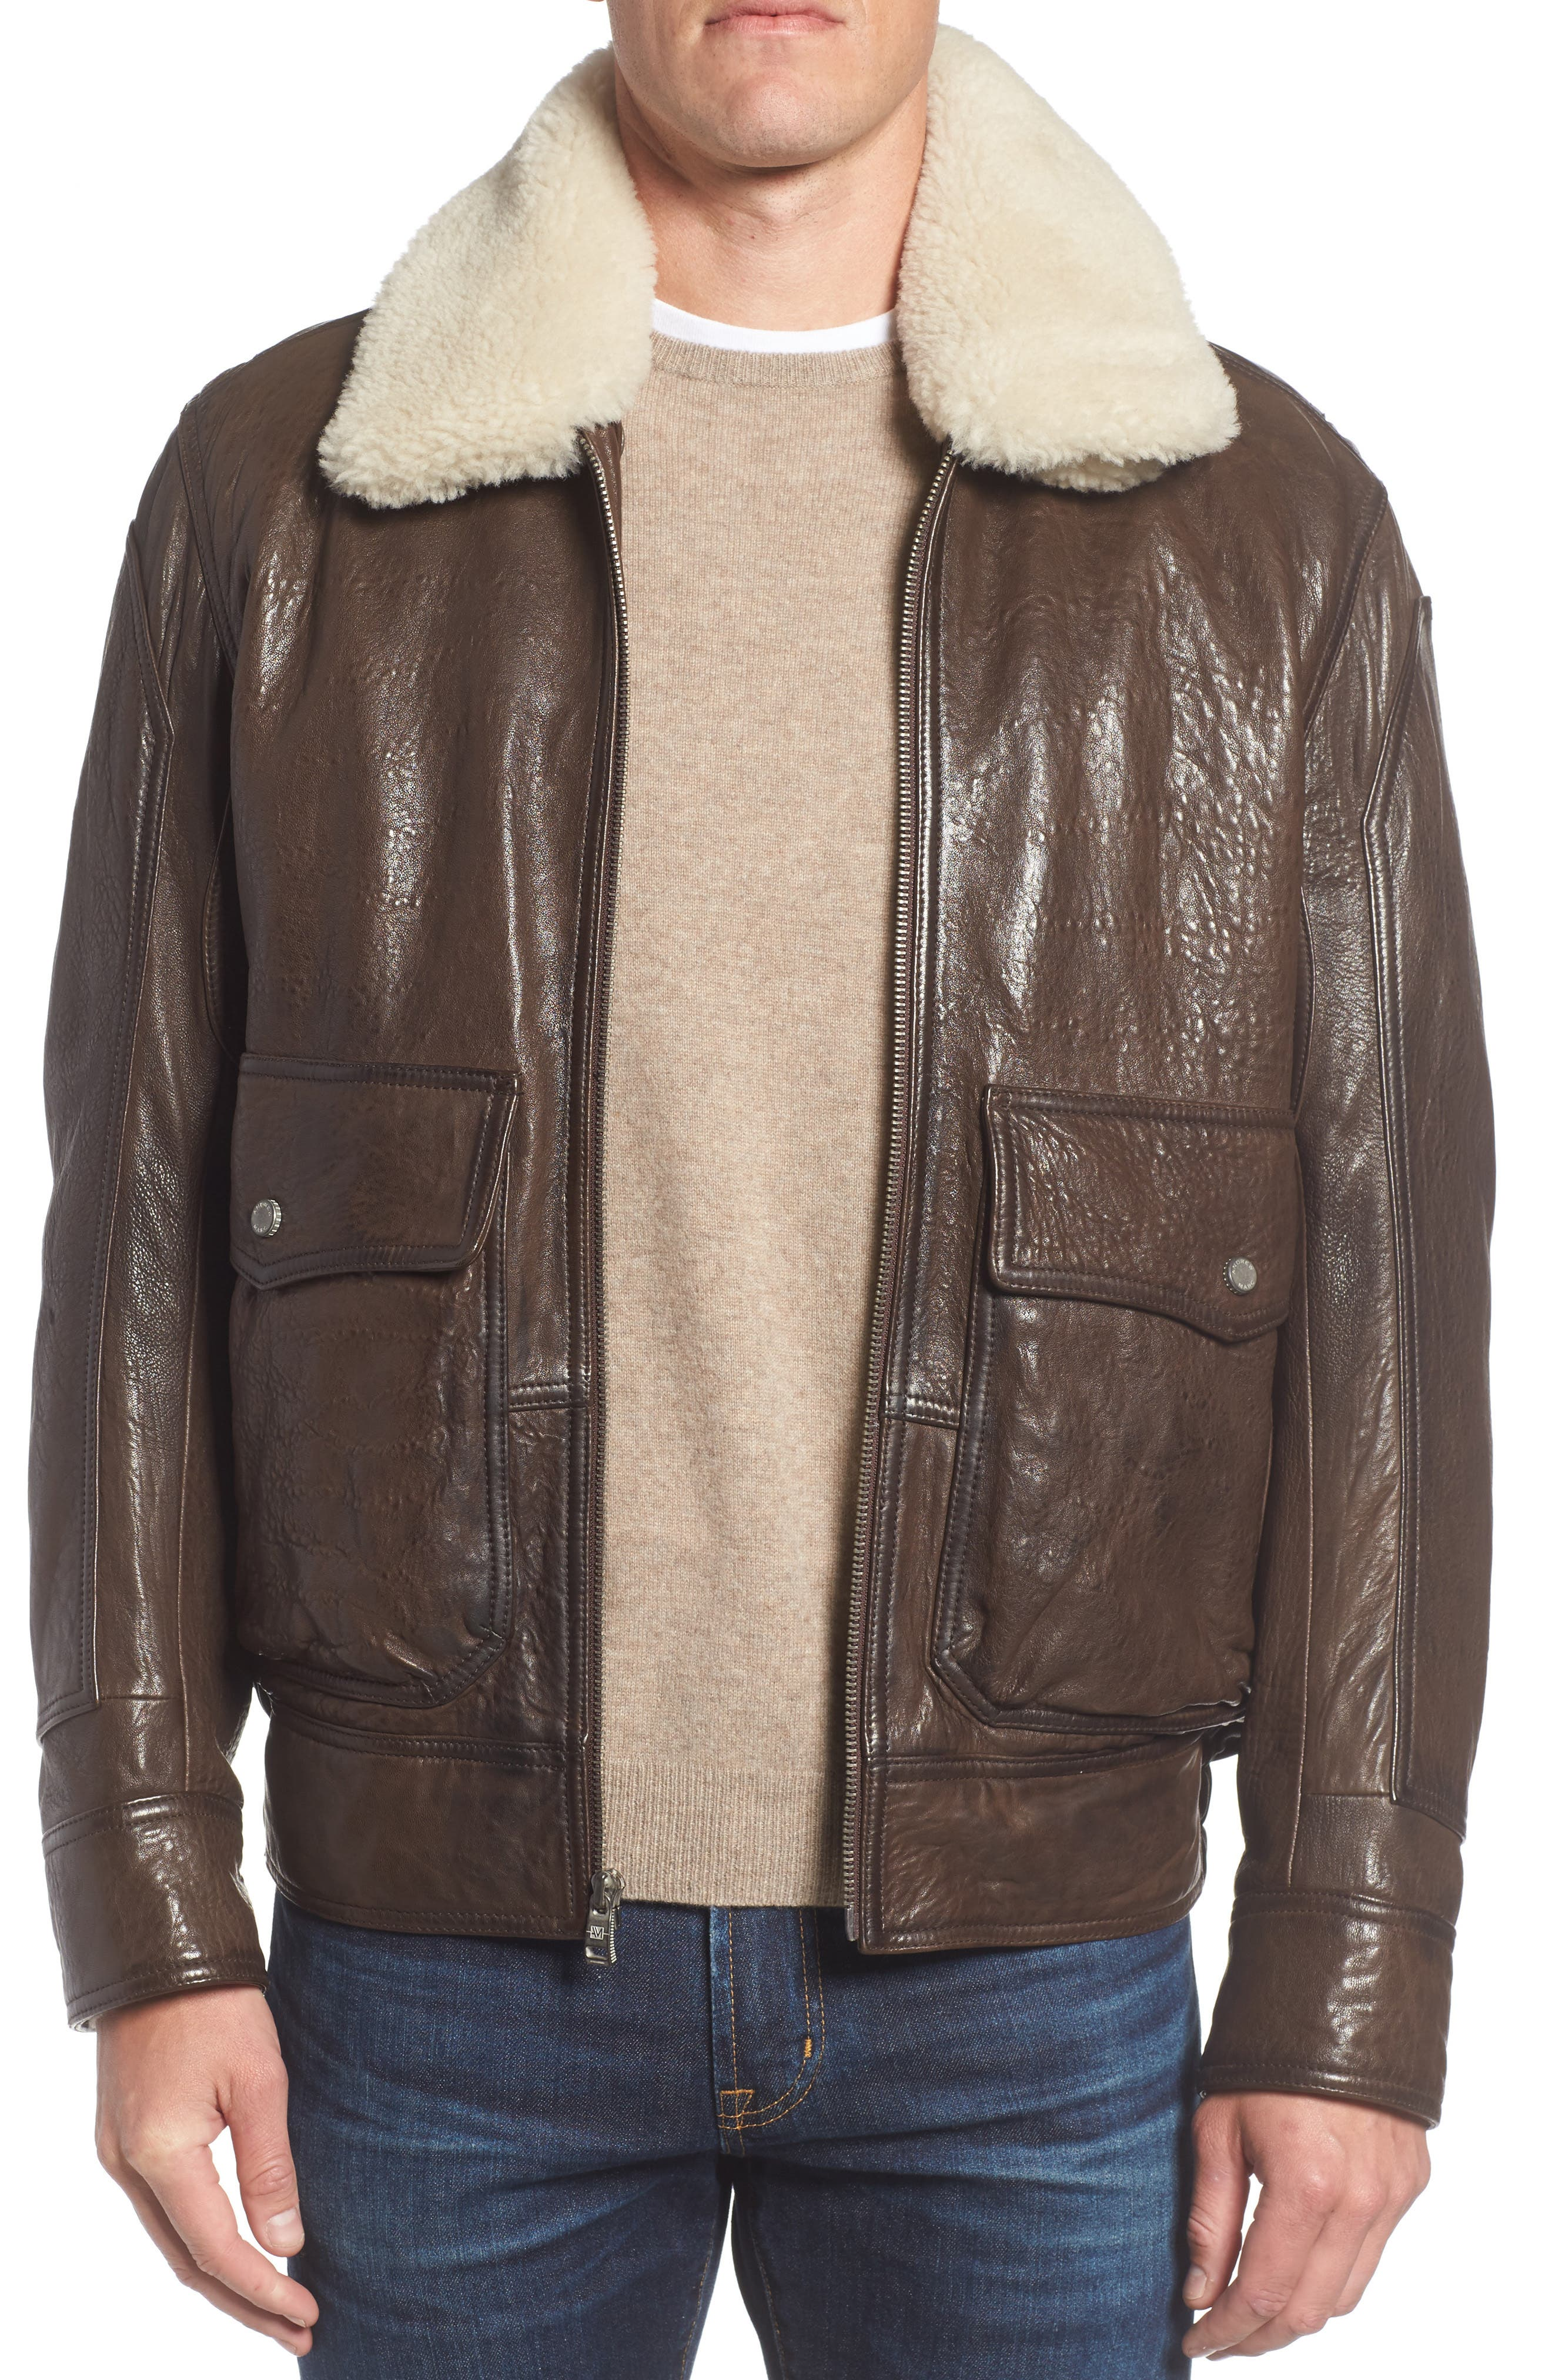 Andrew Marc 3614 Leather Jacket with Genuine Lamb Shearling Collar